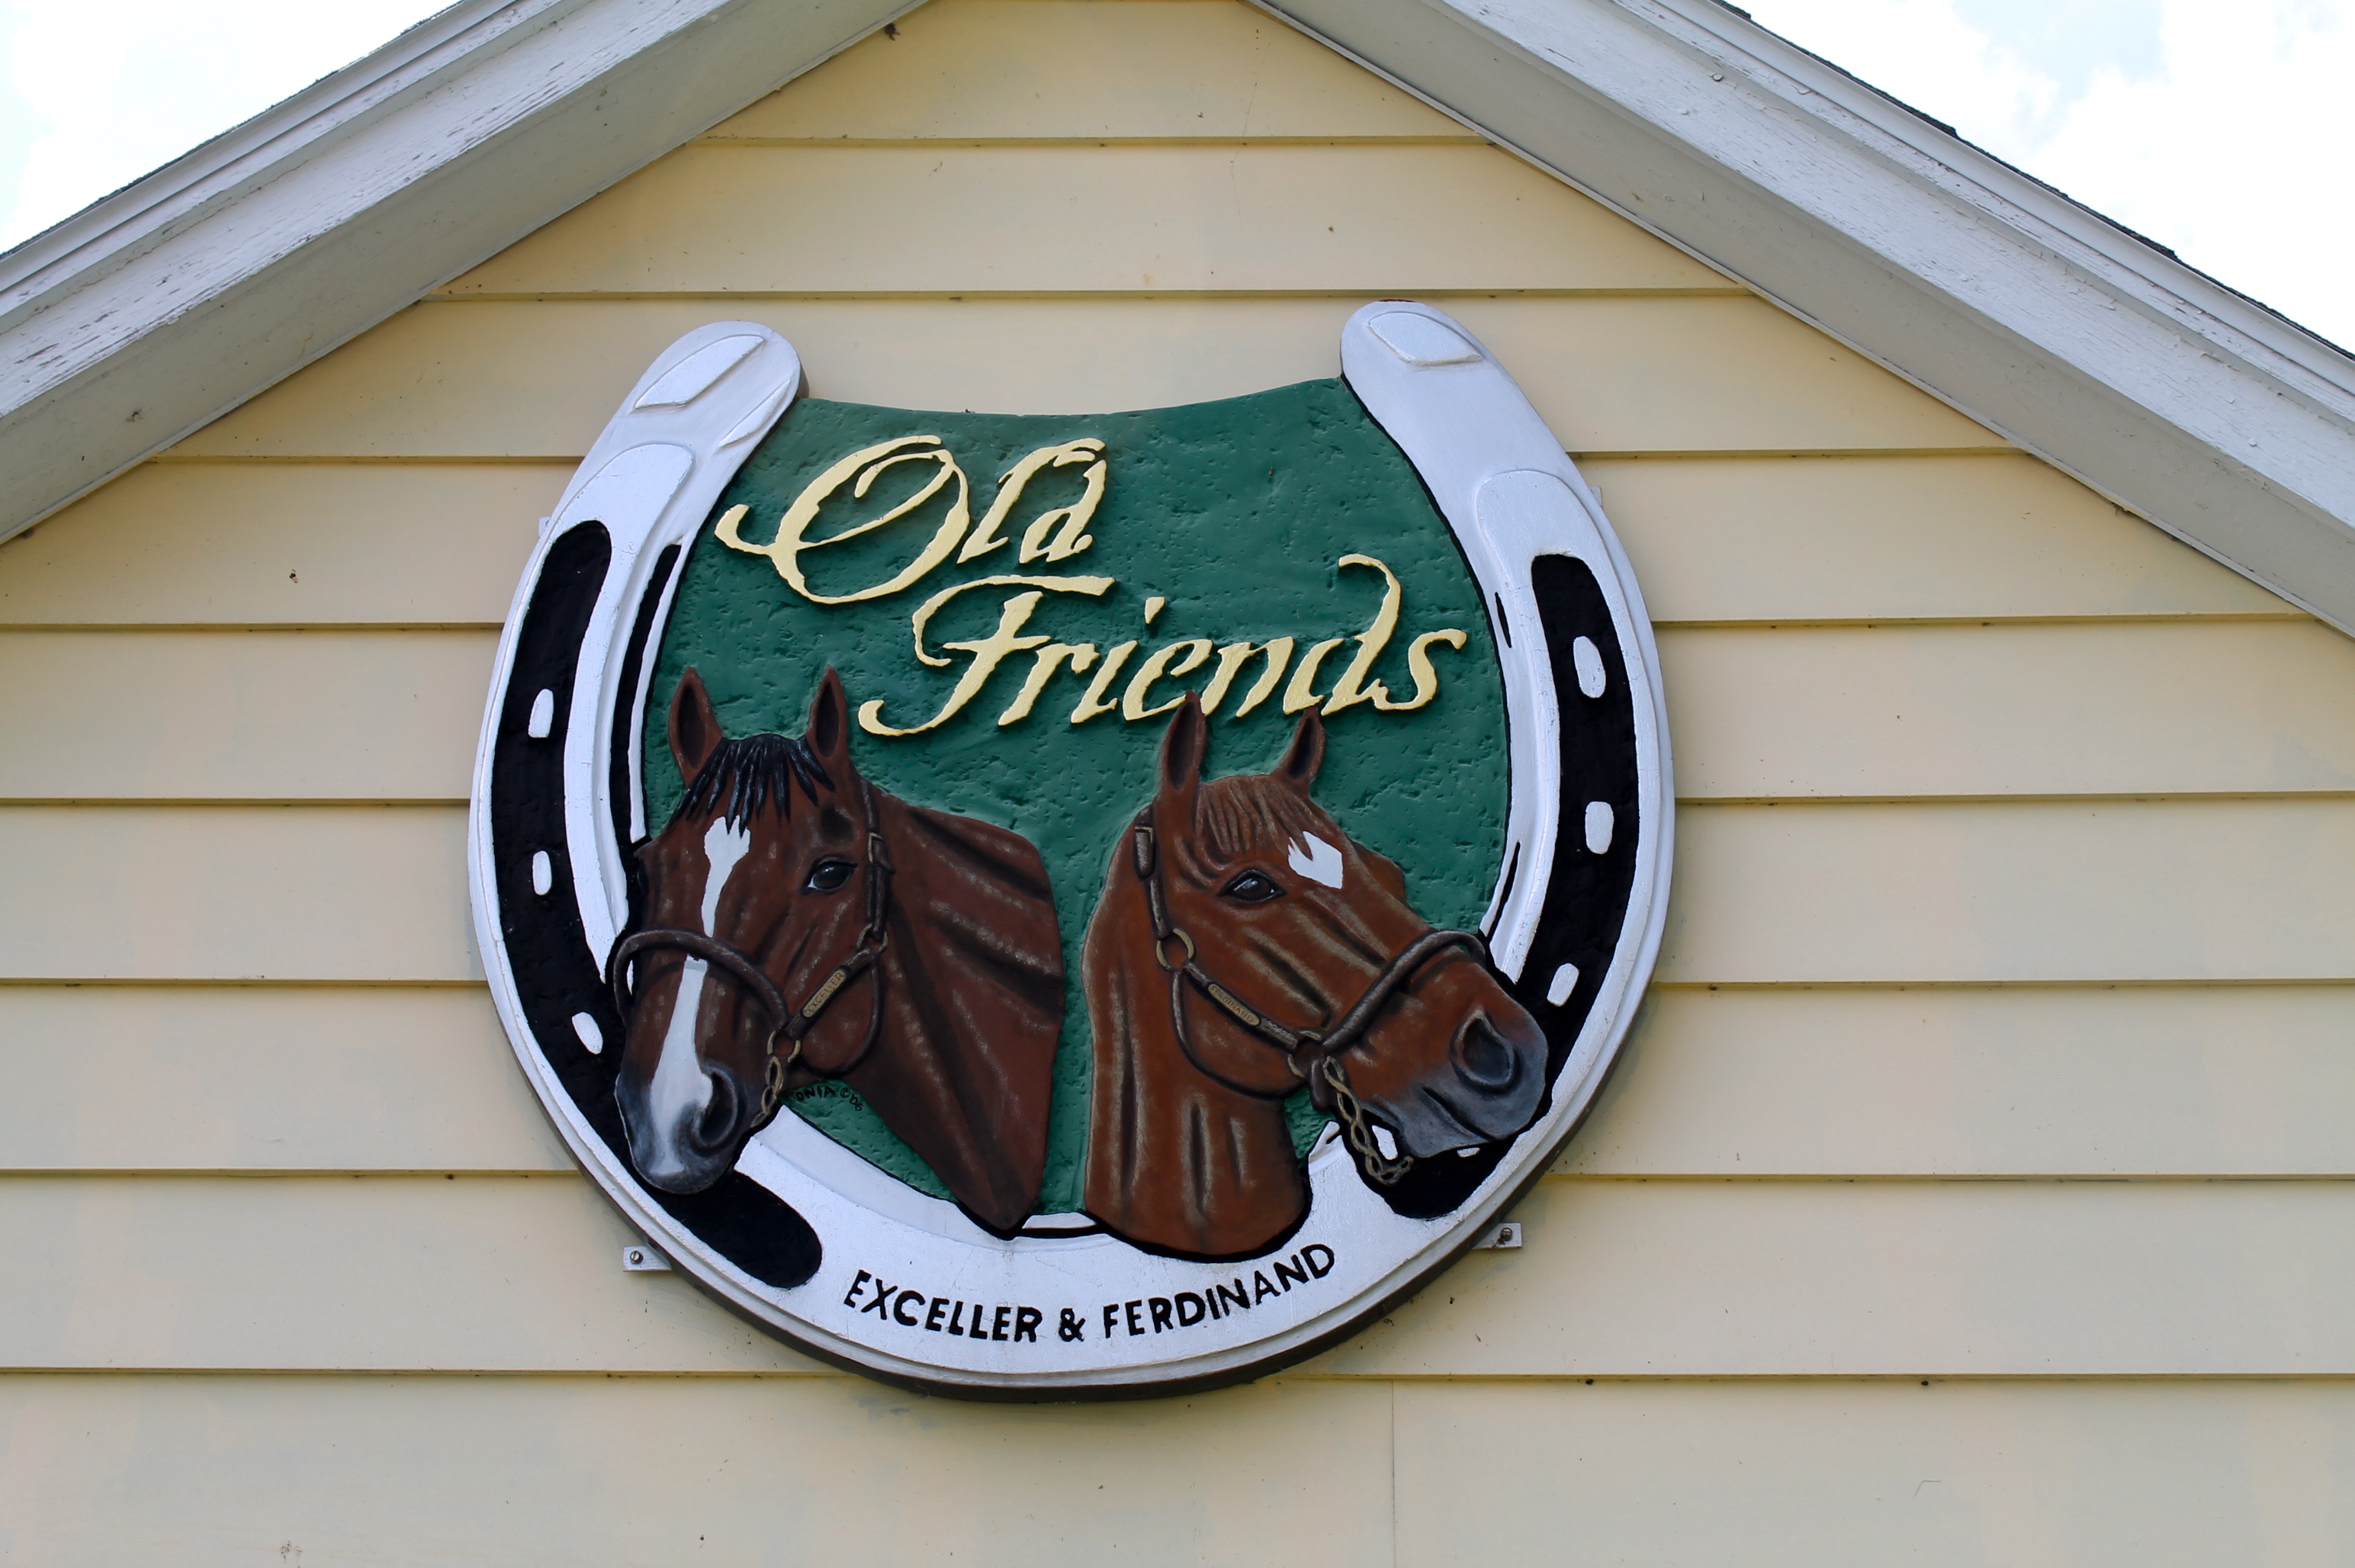 IMG 2551 - Old Folks' Home for Horses